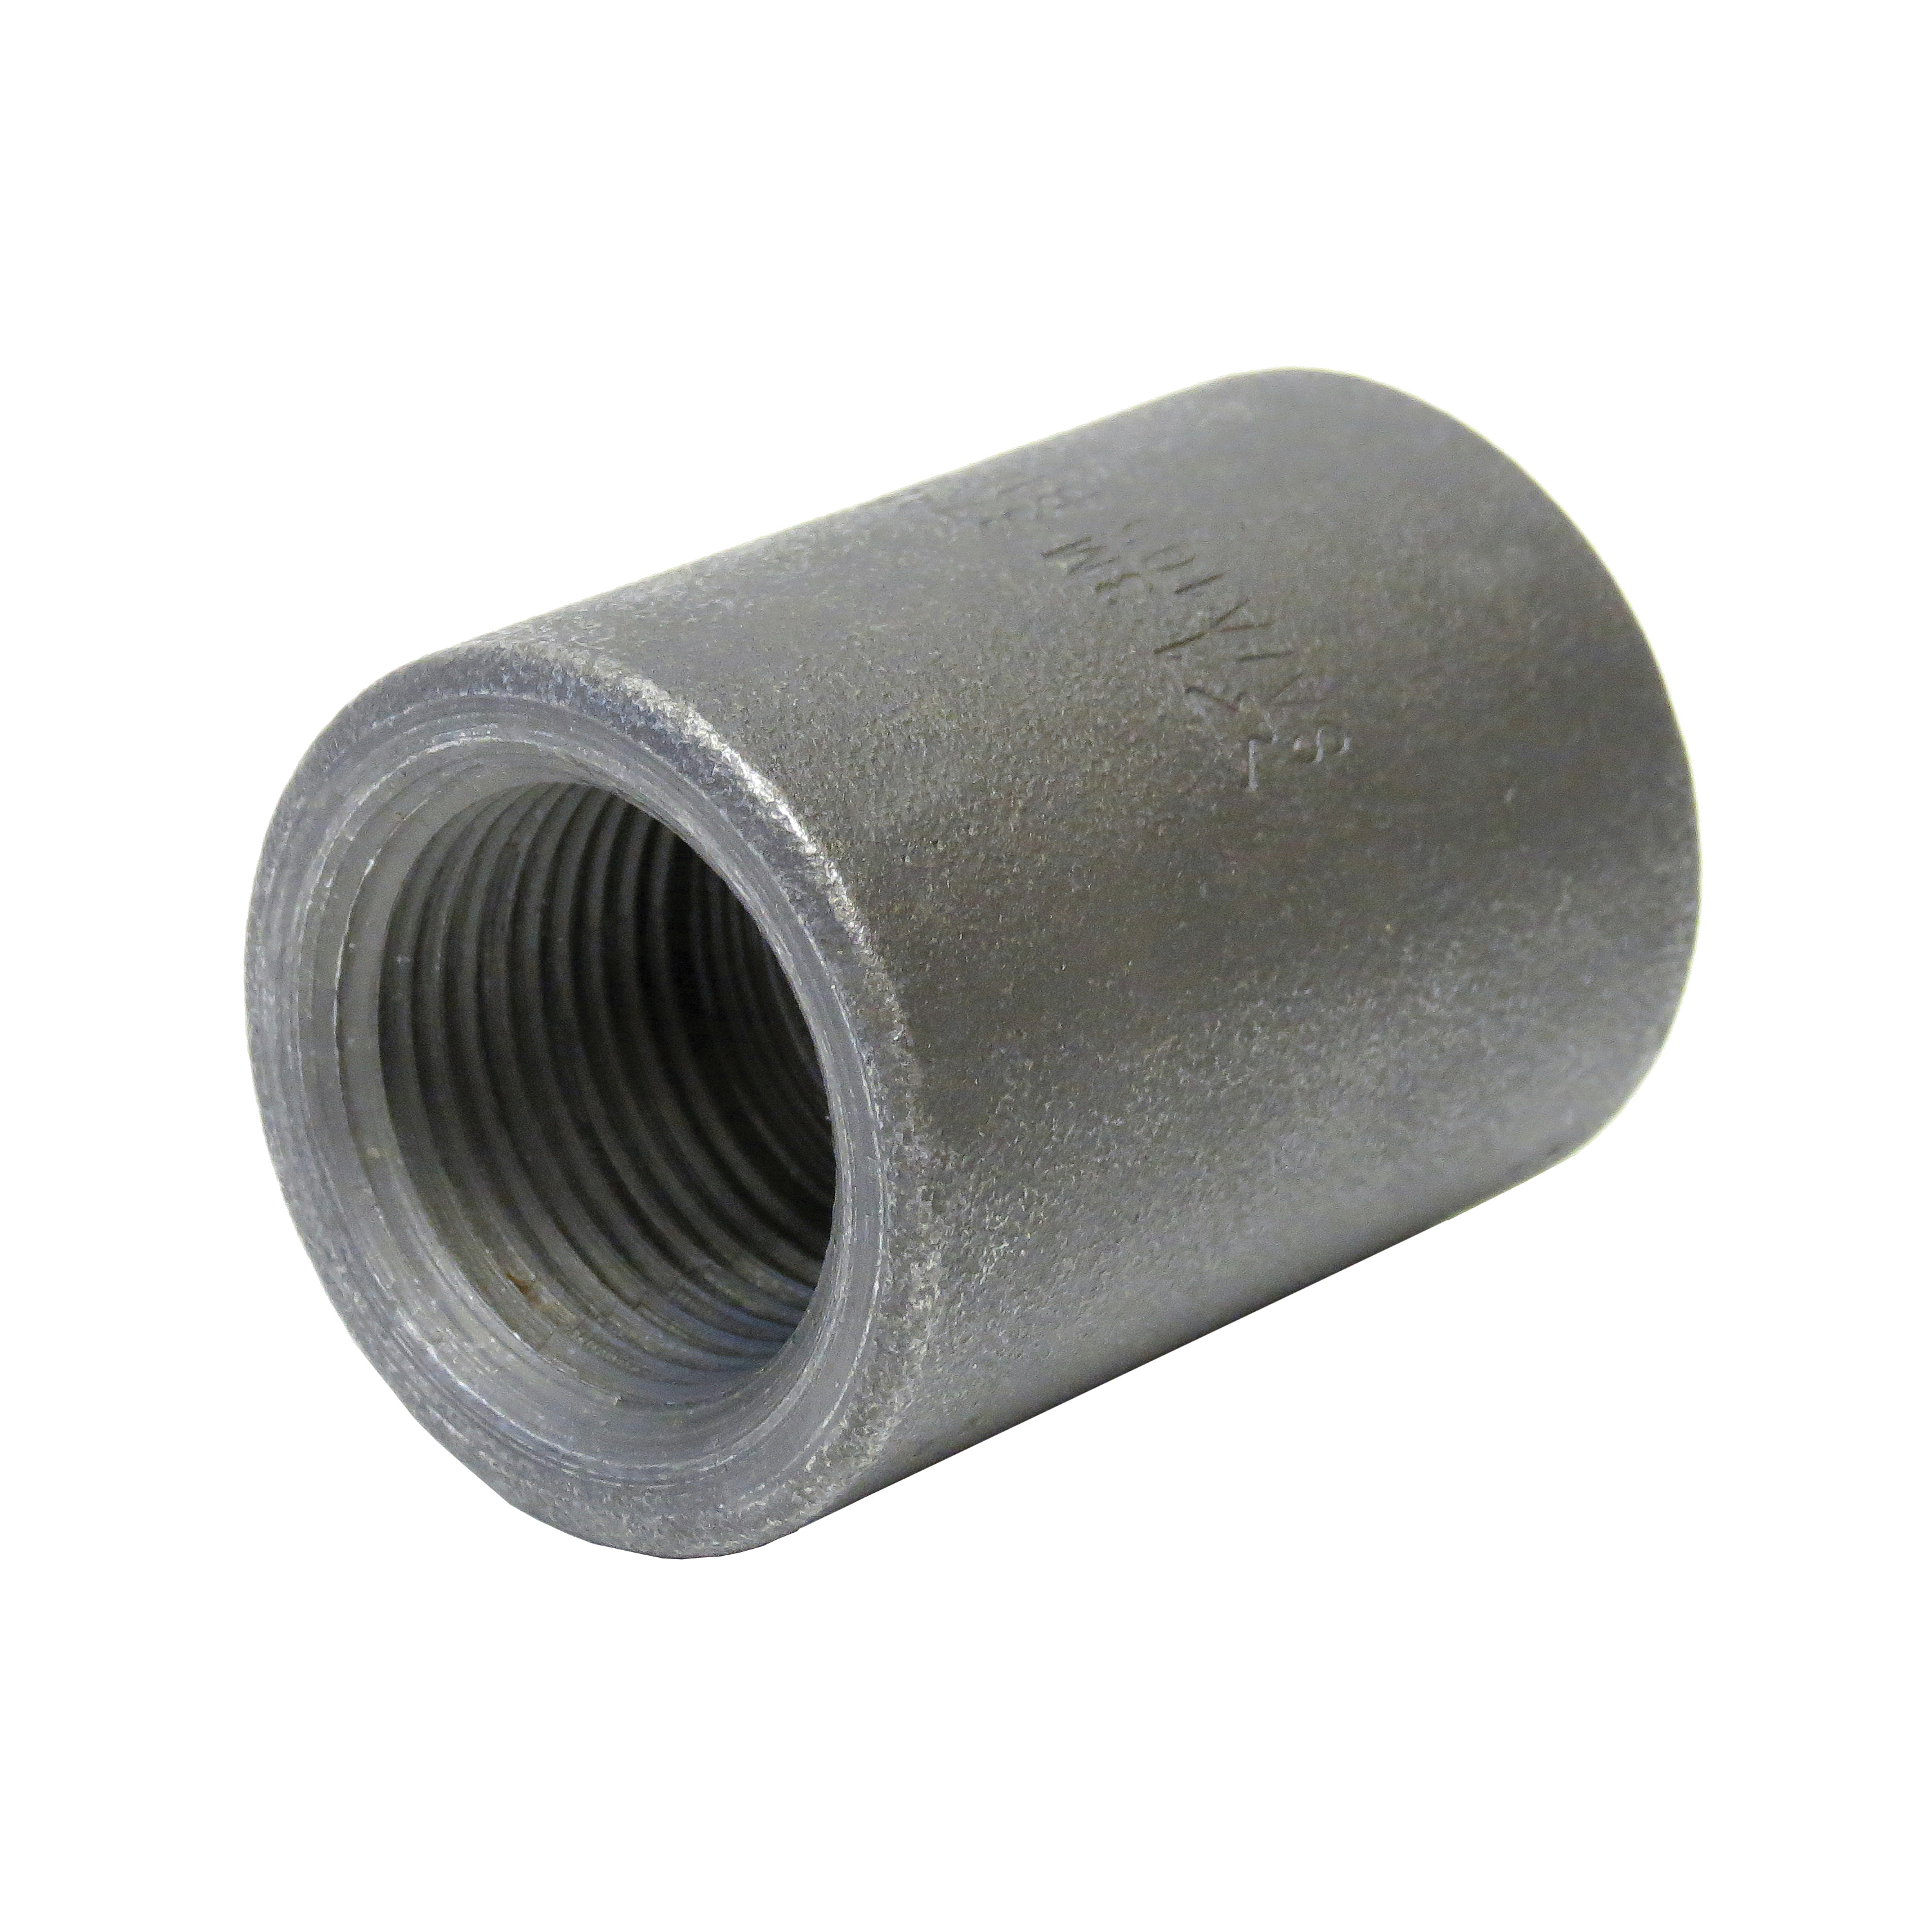 Anvil® 0361156003 FIG 2117 Pipe Coupling, 1 in Nominal, FNPT End Style, 3000 lb, Steel, Black Oxide, Domestic